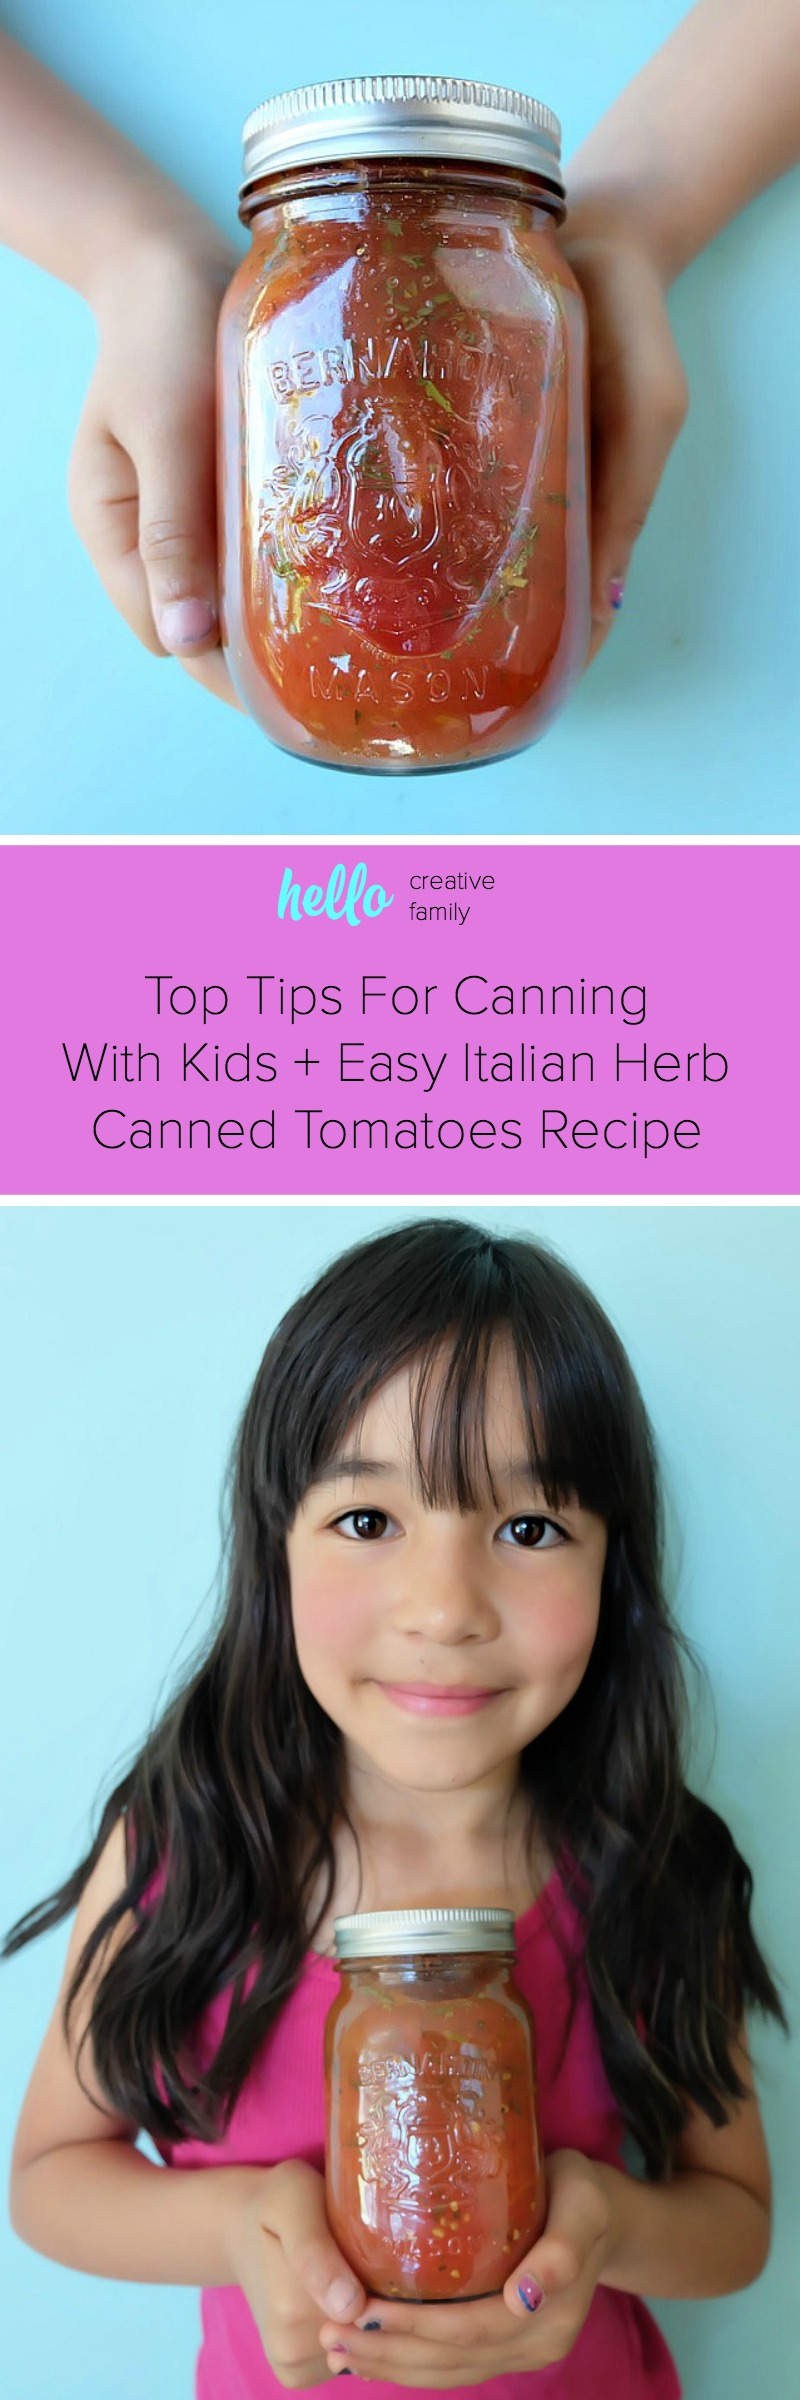 Canning can seem daunting if you've never tried it before, but we're here to make it super simple! We're sharing our top tips for canning with kids so that you can get started canning with your family this summer! Also find our recipe for Easy Italian Herb Canned Tomatoes with step by step photos and instructions for those new to canning and trying it for the first time! #Canning #FoodPreservation #Recipes #Tomatoes #CookingWithKids #sponsored